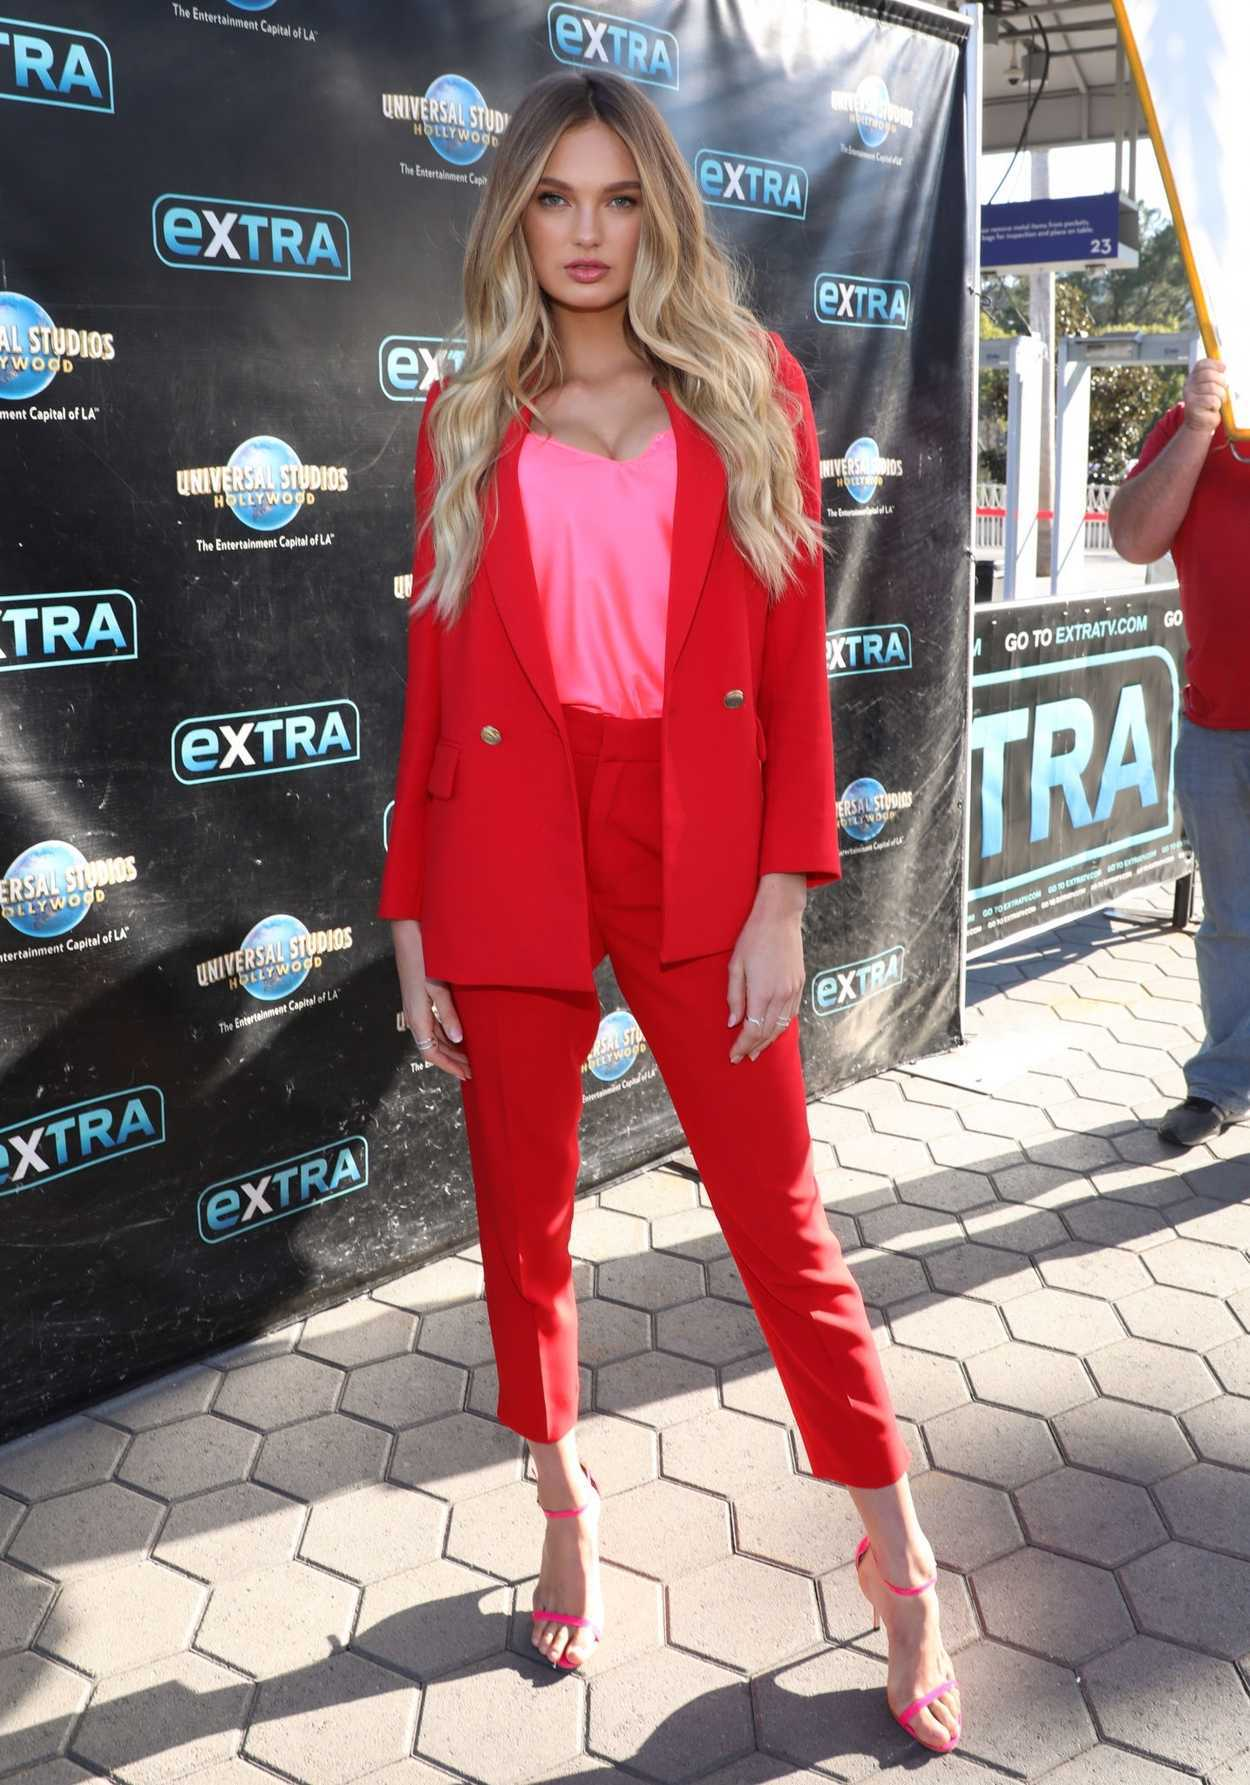 Romee Strijd in a Red Suit Arrives at Extra Show at